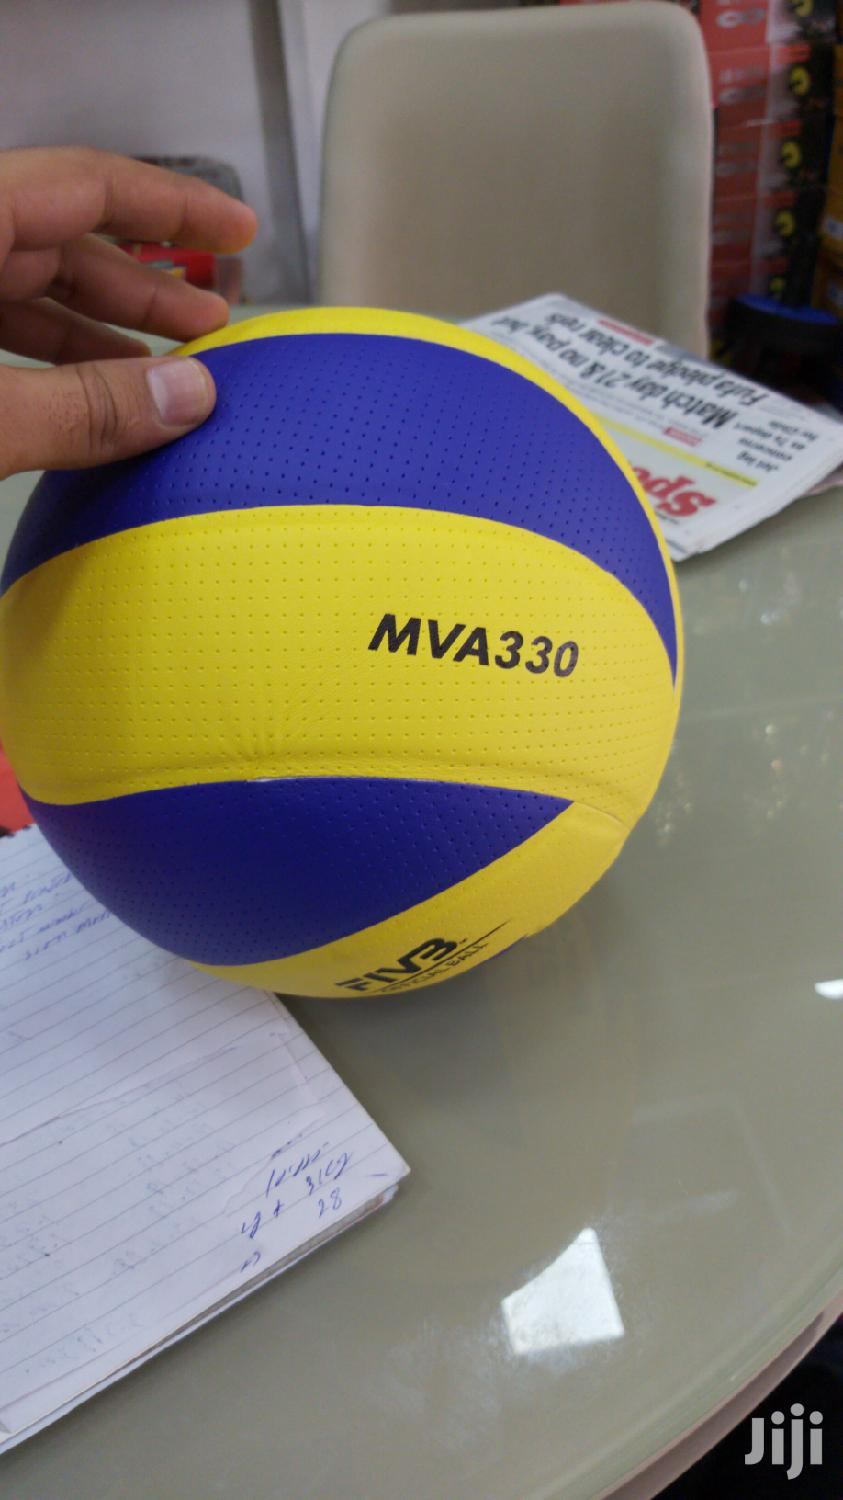 Volleyball Tubeless | Sports Equipment for sale in Kampala, Central Region, Uganda